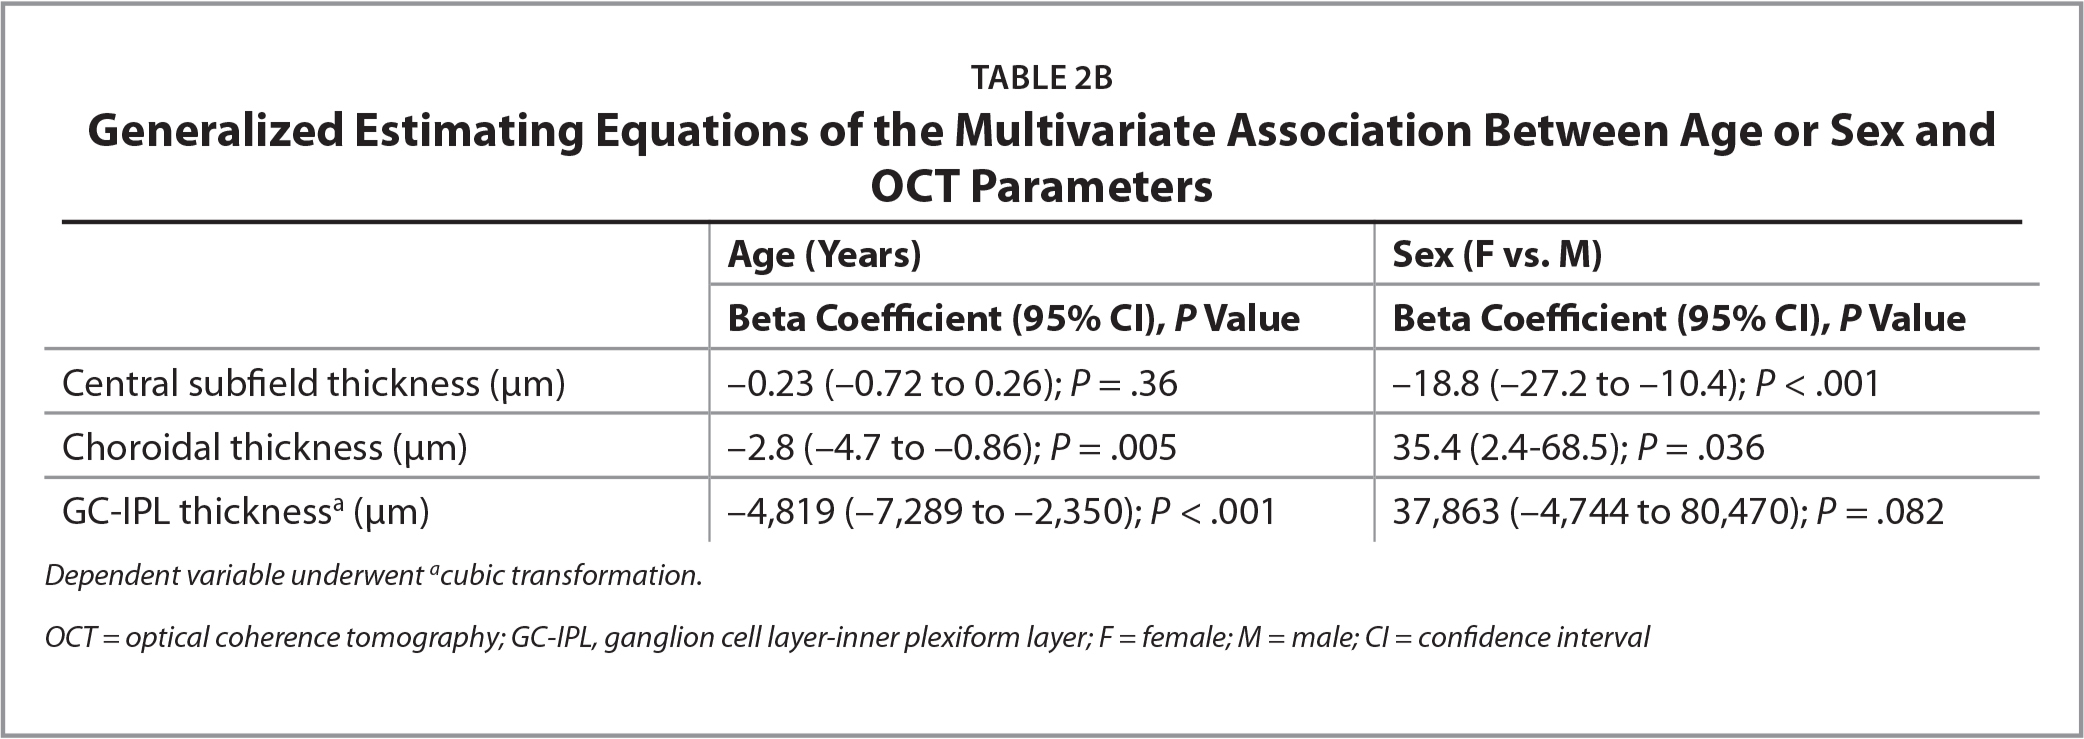 Generalized Estimating Equations of the Multivariate Association Between Age or Sex and OCT Parameters